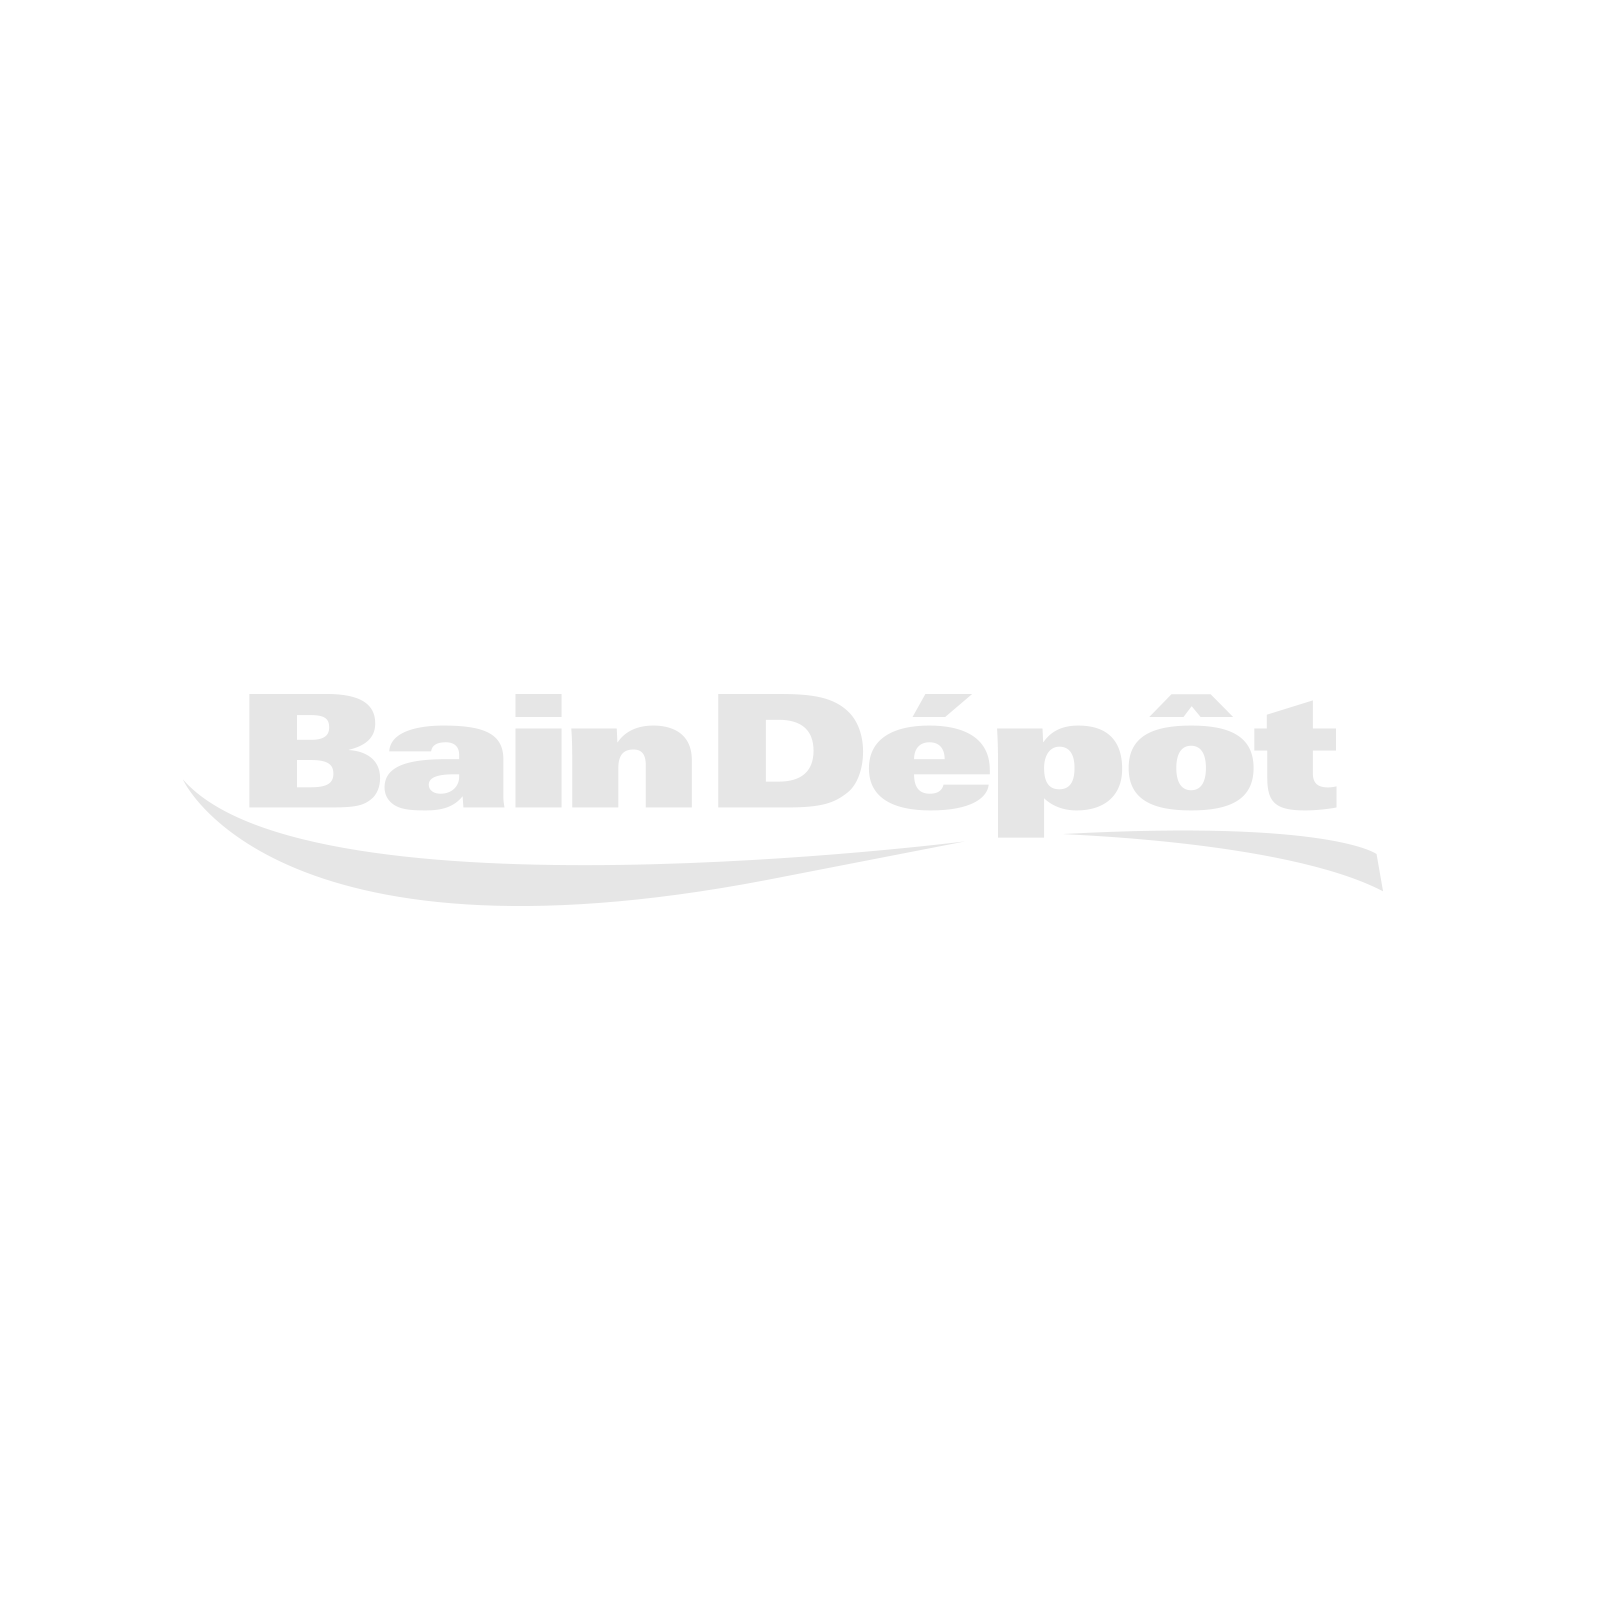 "33"" x 15"" x 13"" Two-door over-the-fridge kitchen cabinet"